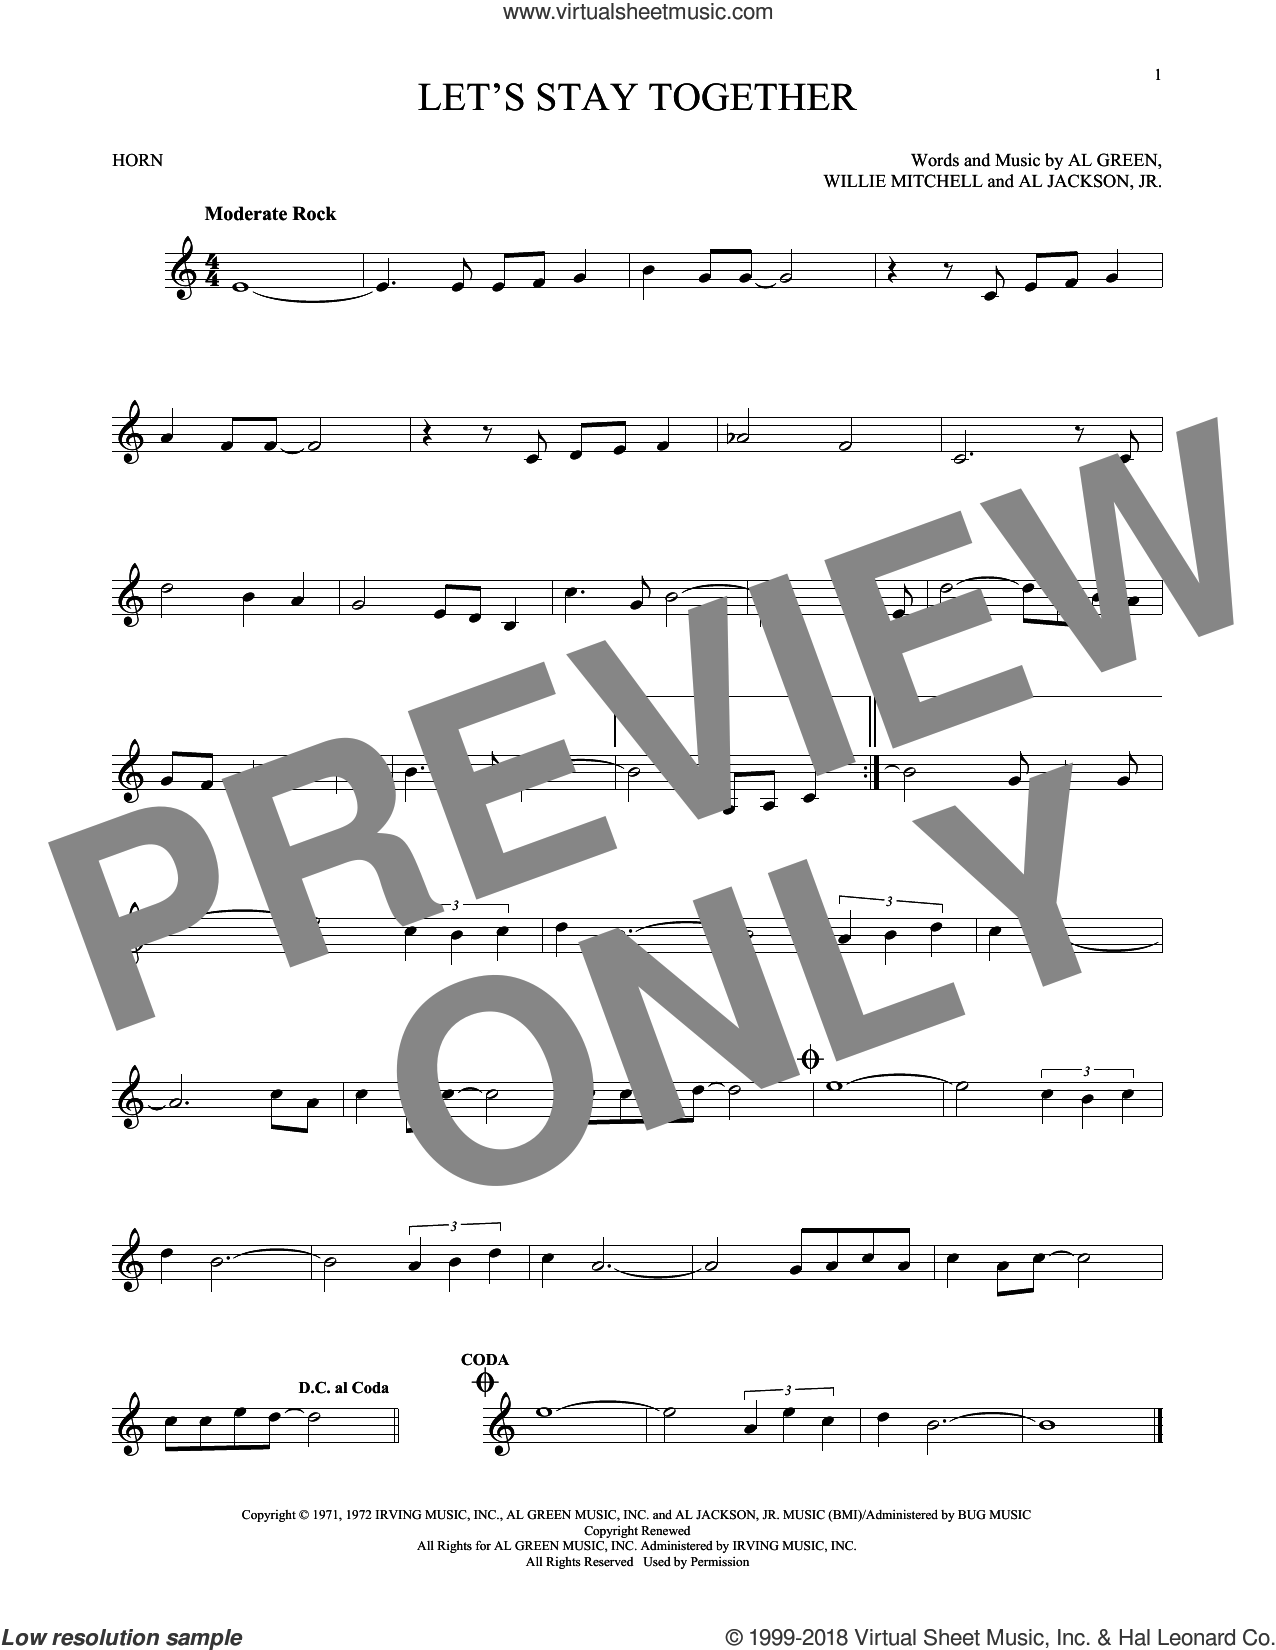 Let's Stay Together sheet music for horn solo by Al Green, Al Jackson, Jr. and Willie Mitchell, intermediate skill level